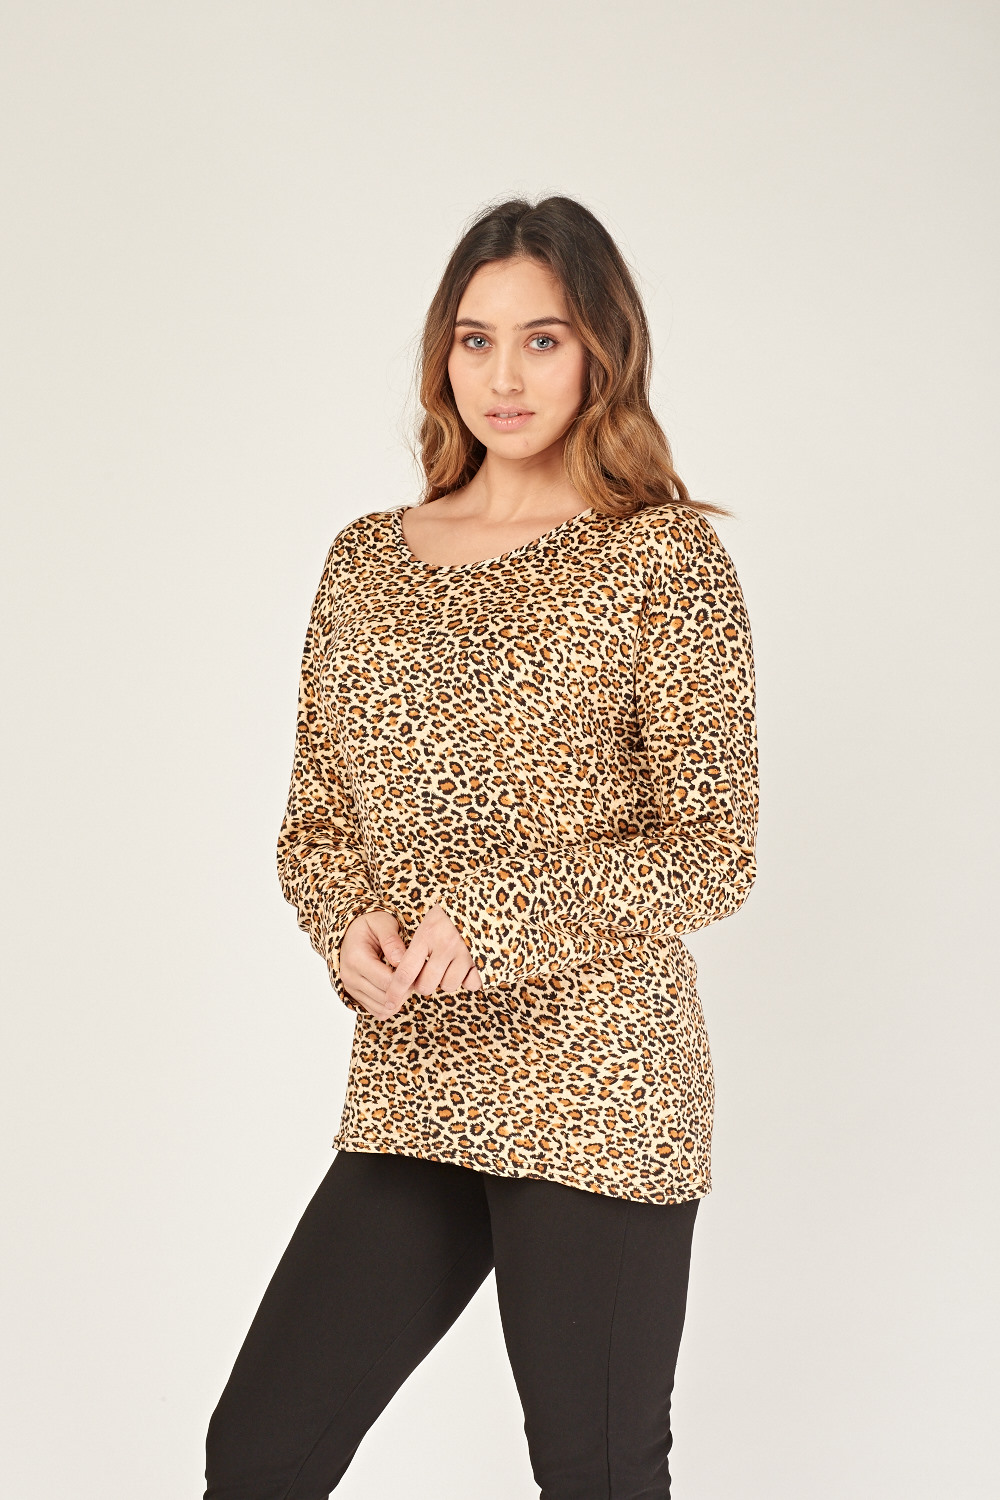 635a75e5a013be Leopard Print Round Neck Top - Just £5